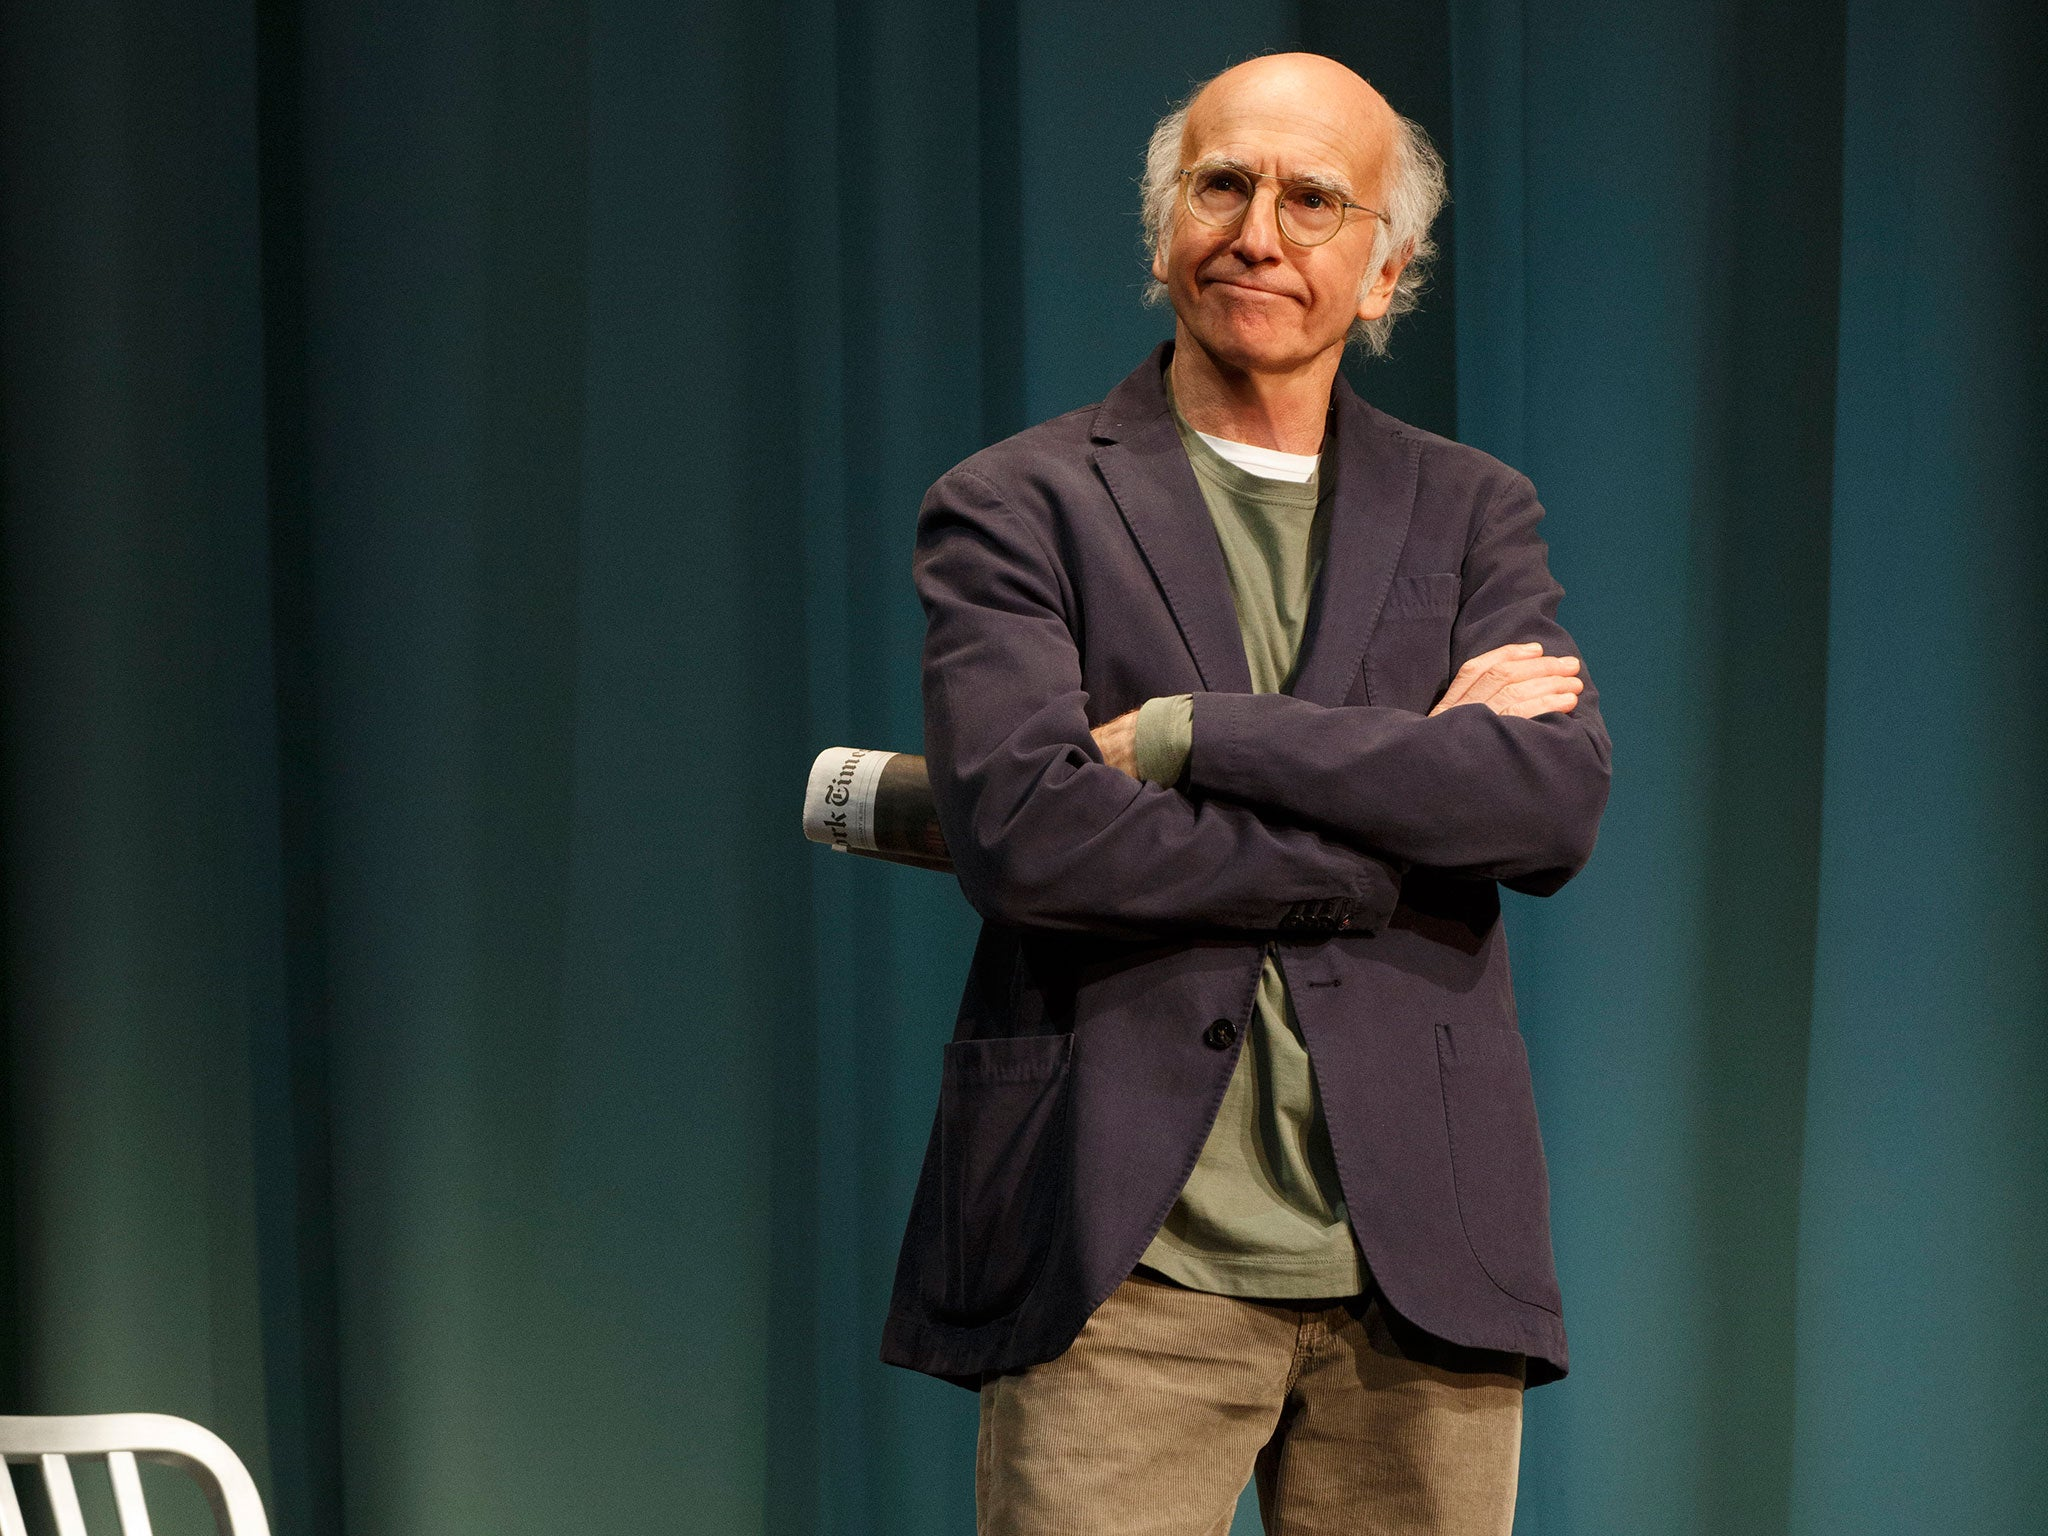 larry david social assassin